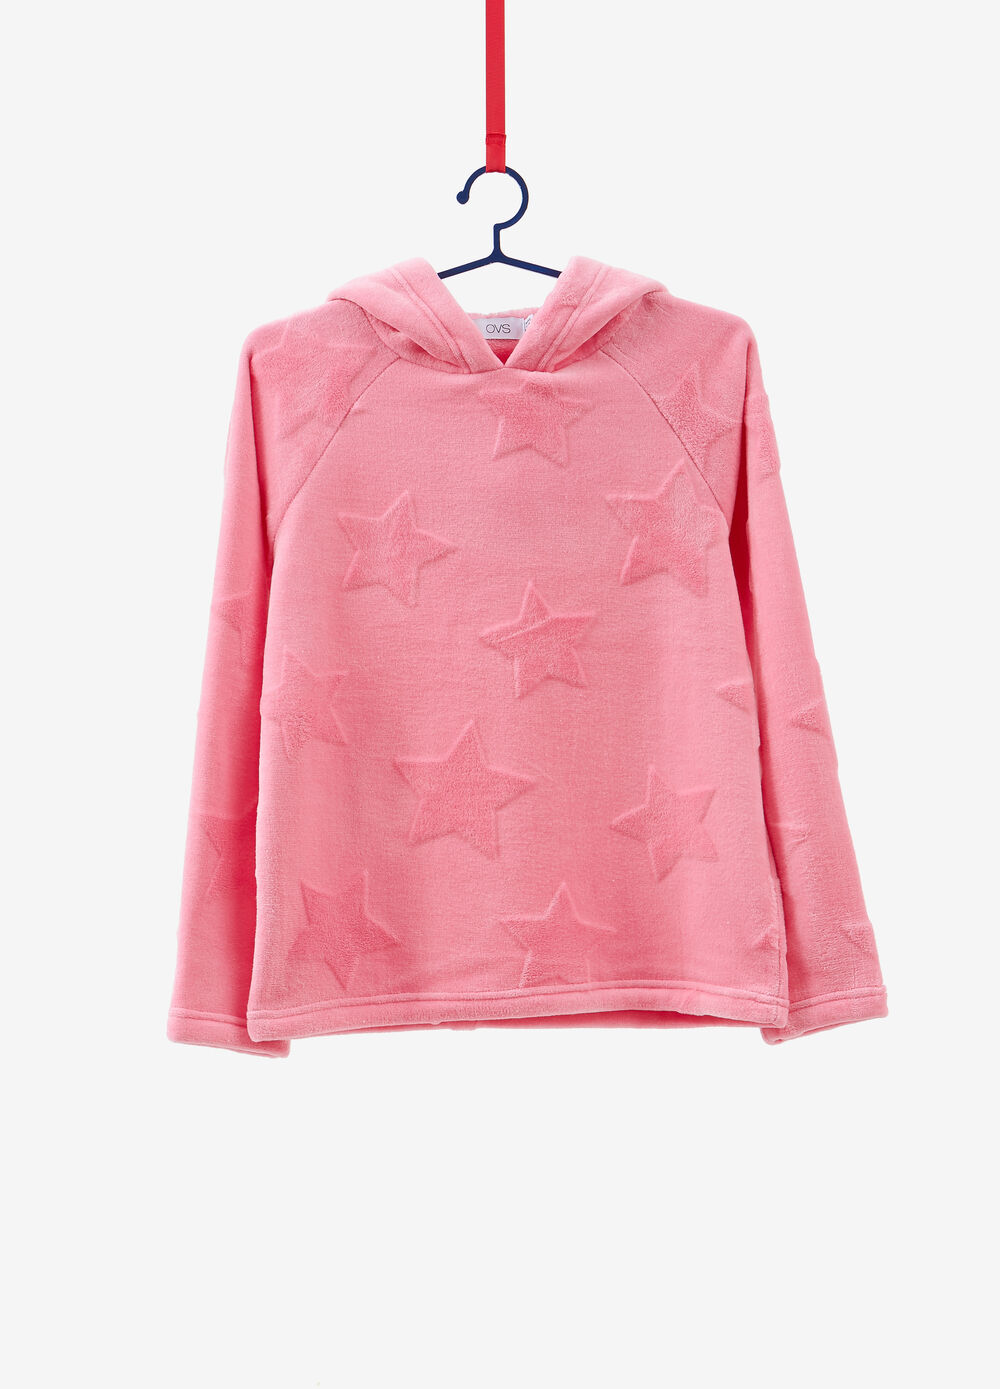 Sweatshirt with flocked star print